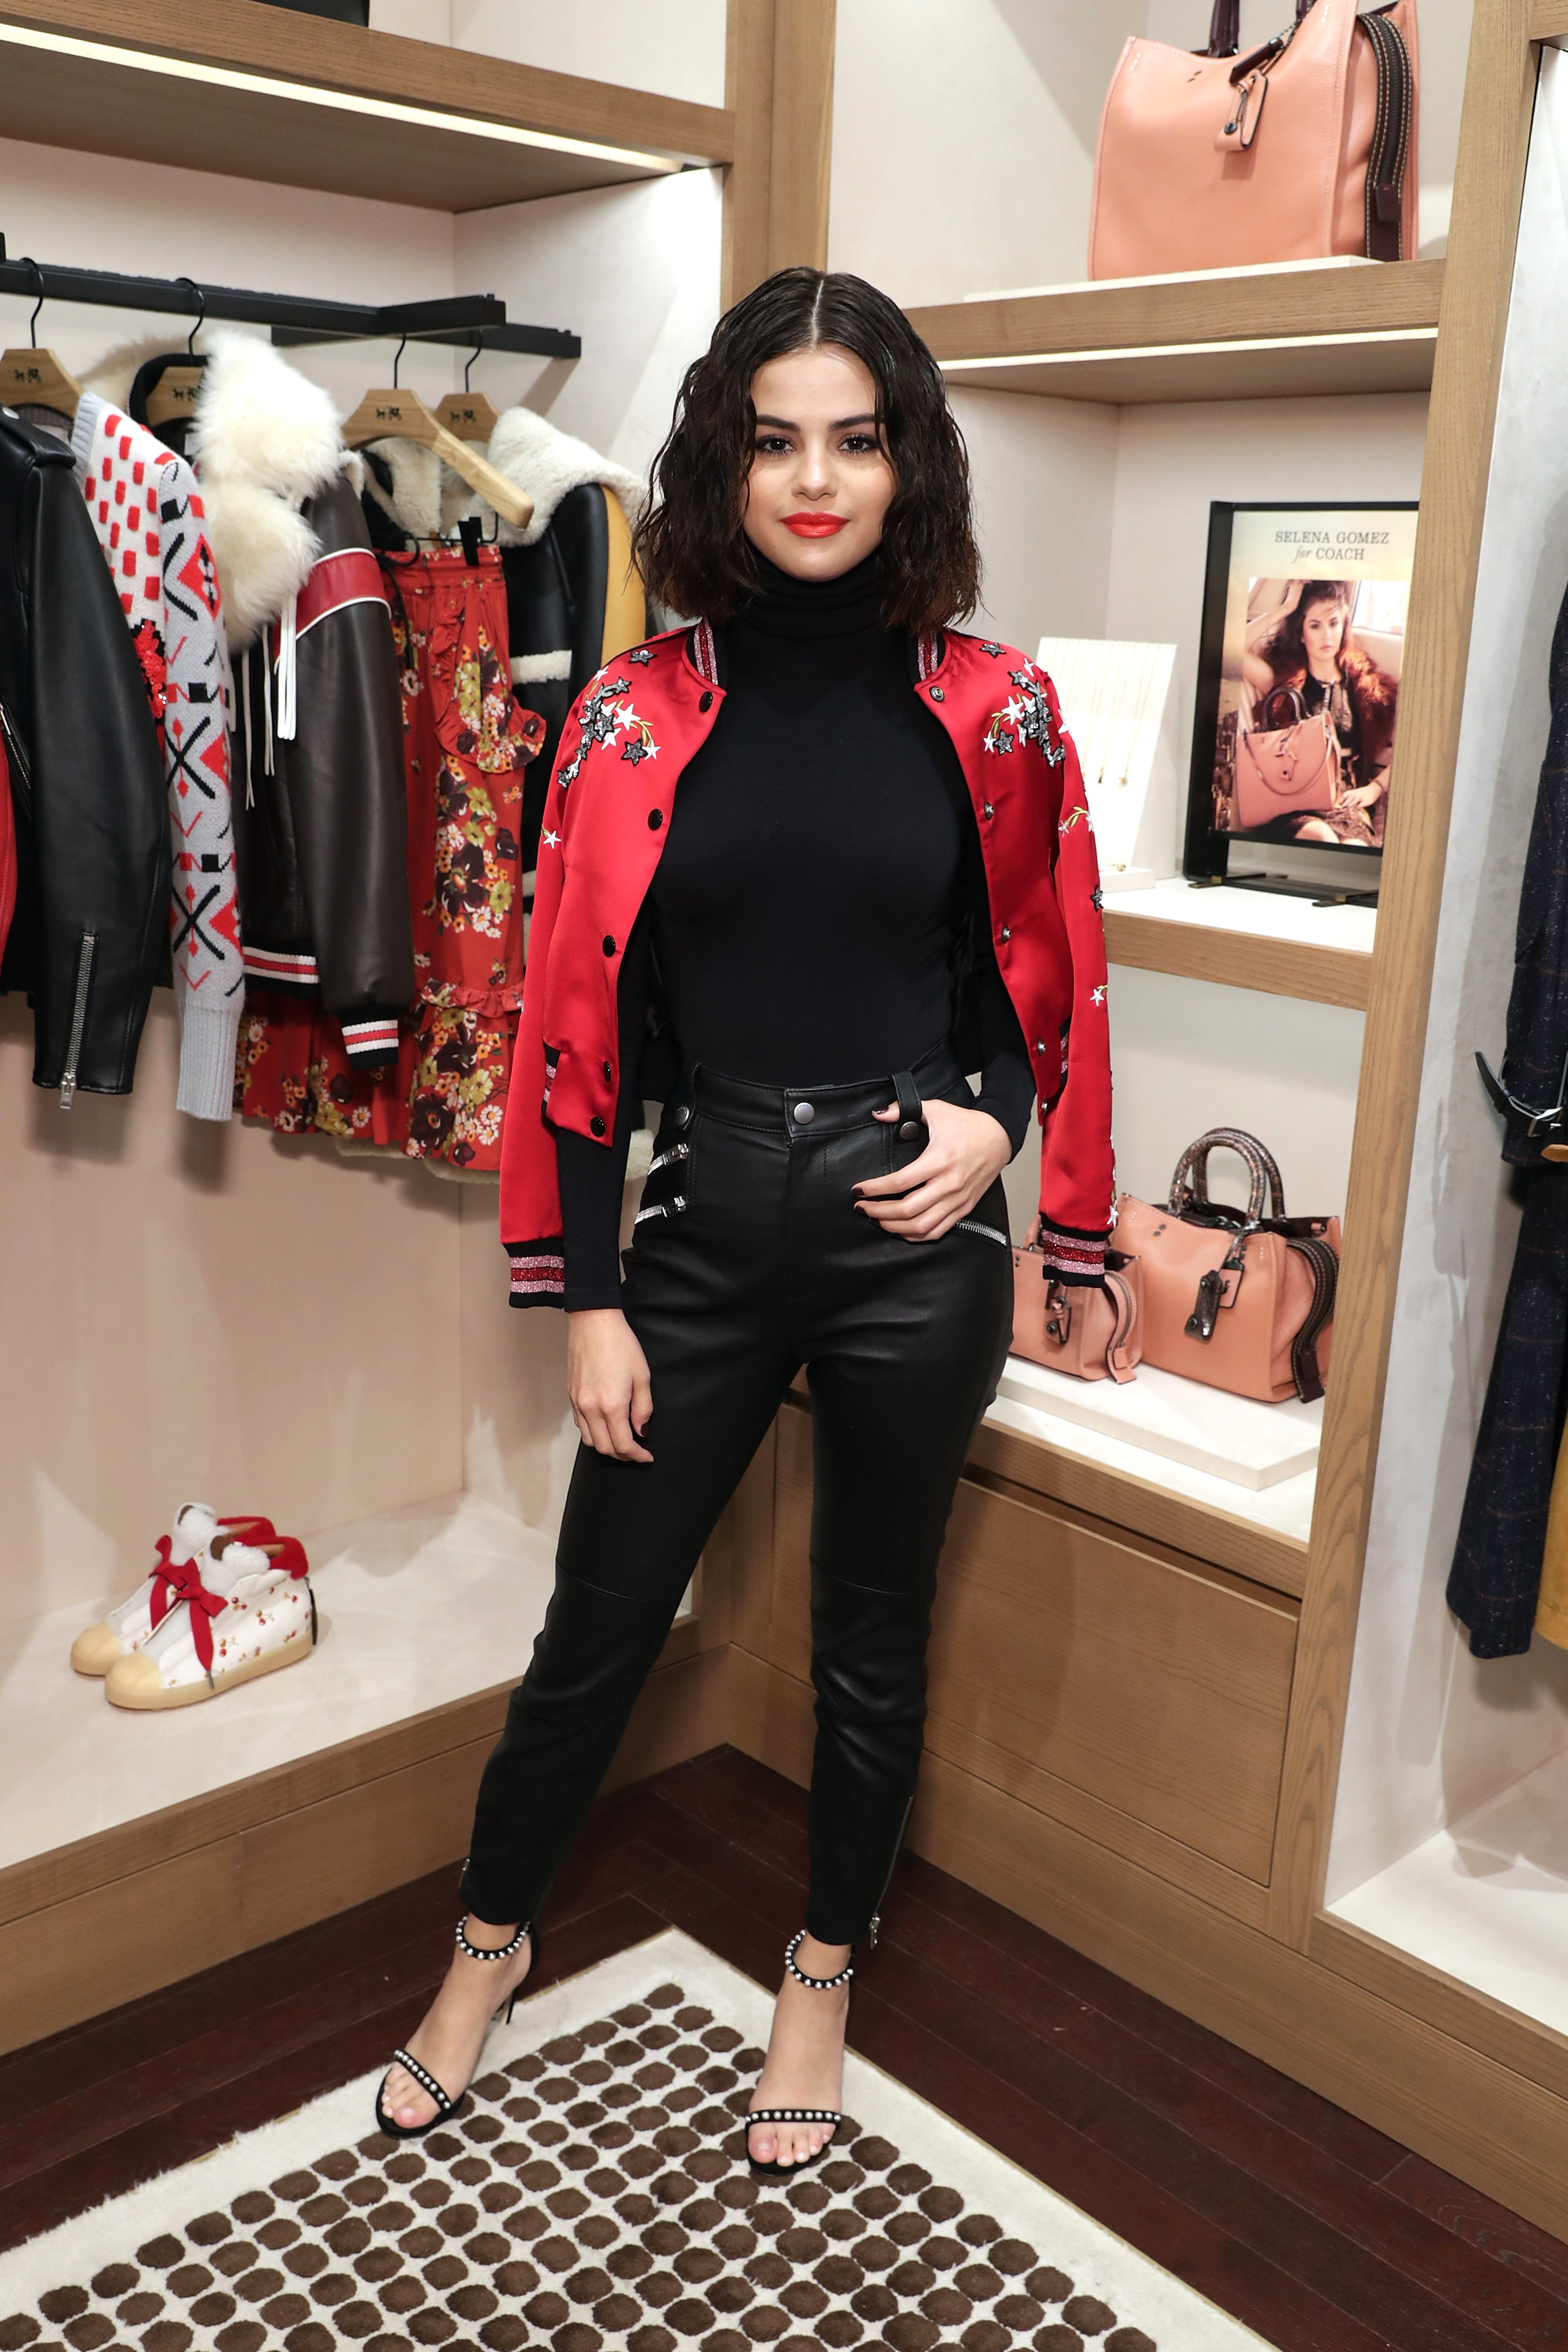 NEW YORK, NY - SEPTEMBER 13:  Selena Gomez poses during the Coach In-Store Event with Selena Gomez at Coach Boutique on September 13, 2017 in New York City.  (Photo by Cindy Ord/Getty Images for Coach)